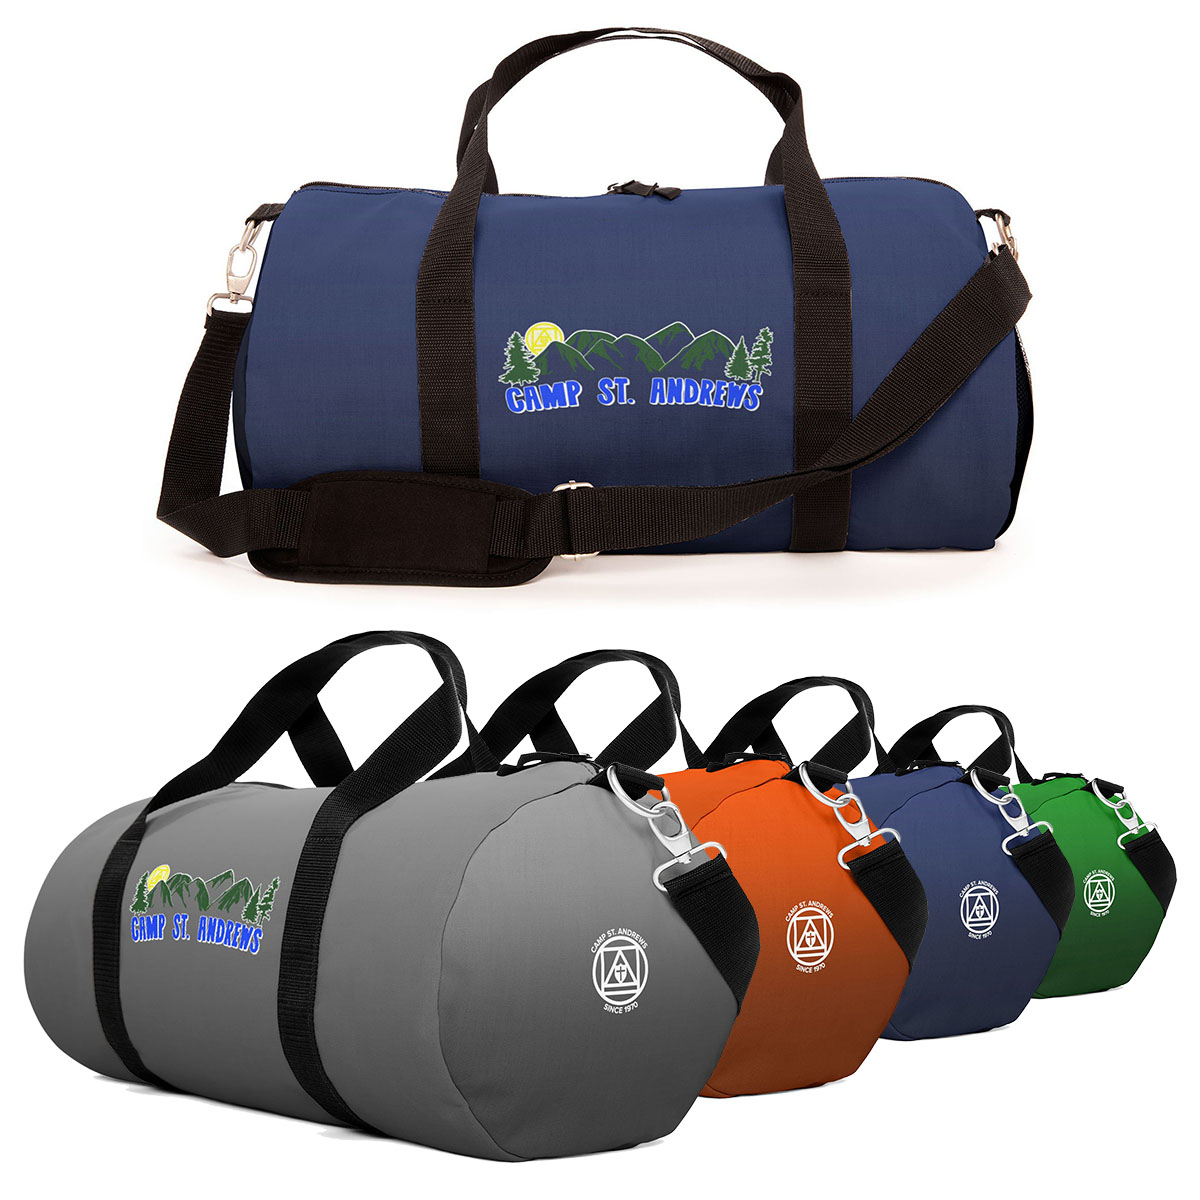 New custom bags available in the Camp St  Andrews merchandise shop